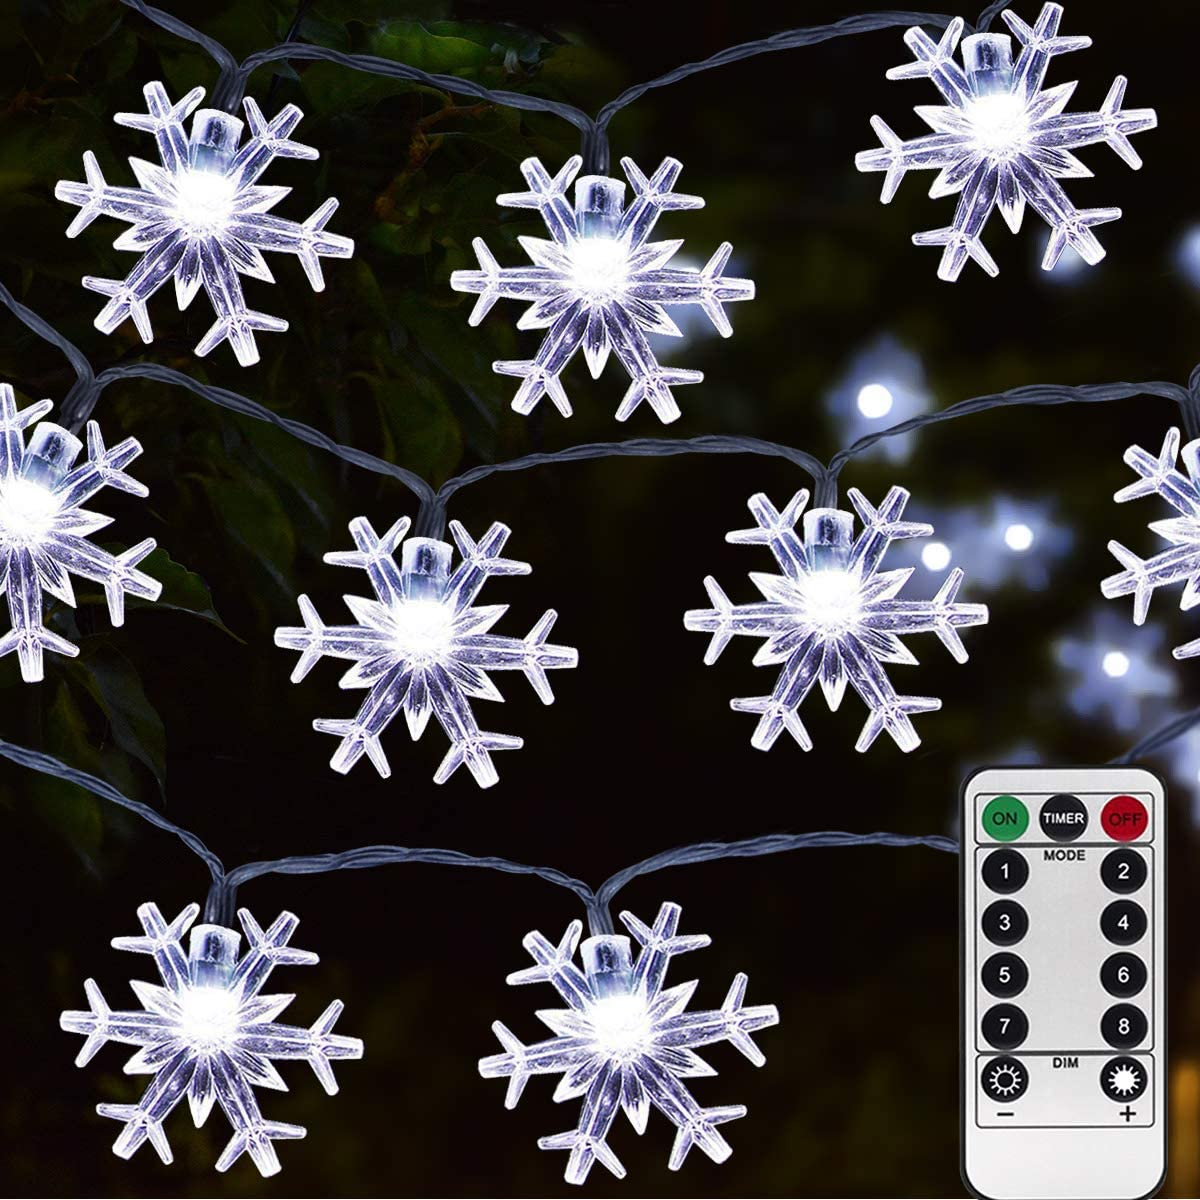 Homeleo 50 Led Cold White Snowflake LED Fairy Lights with Remote Control, Battery Powered Snowflake Shaped LED String Lights for Christmas Outdoor, Party, Wedding, New Year, Garden Décor